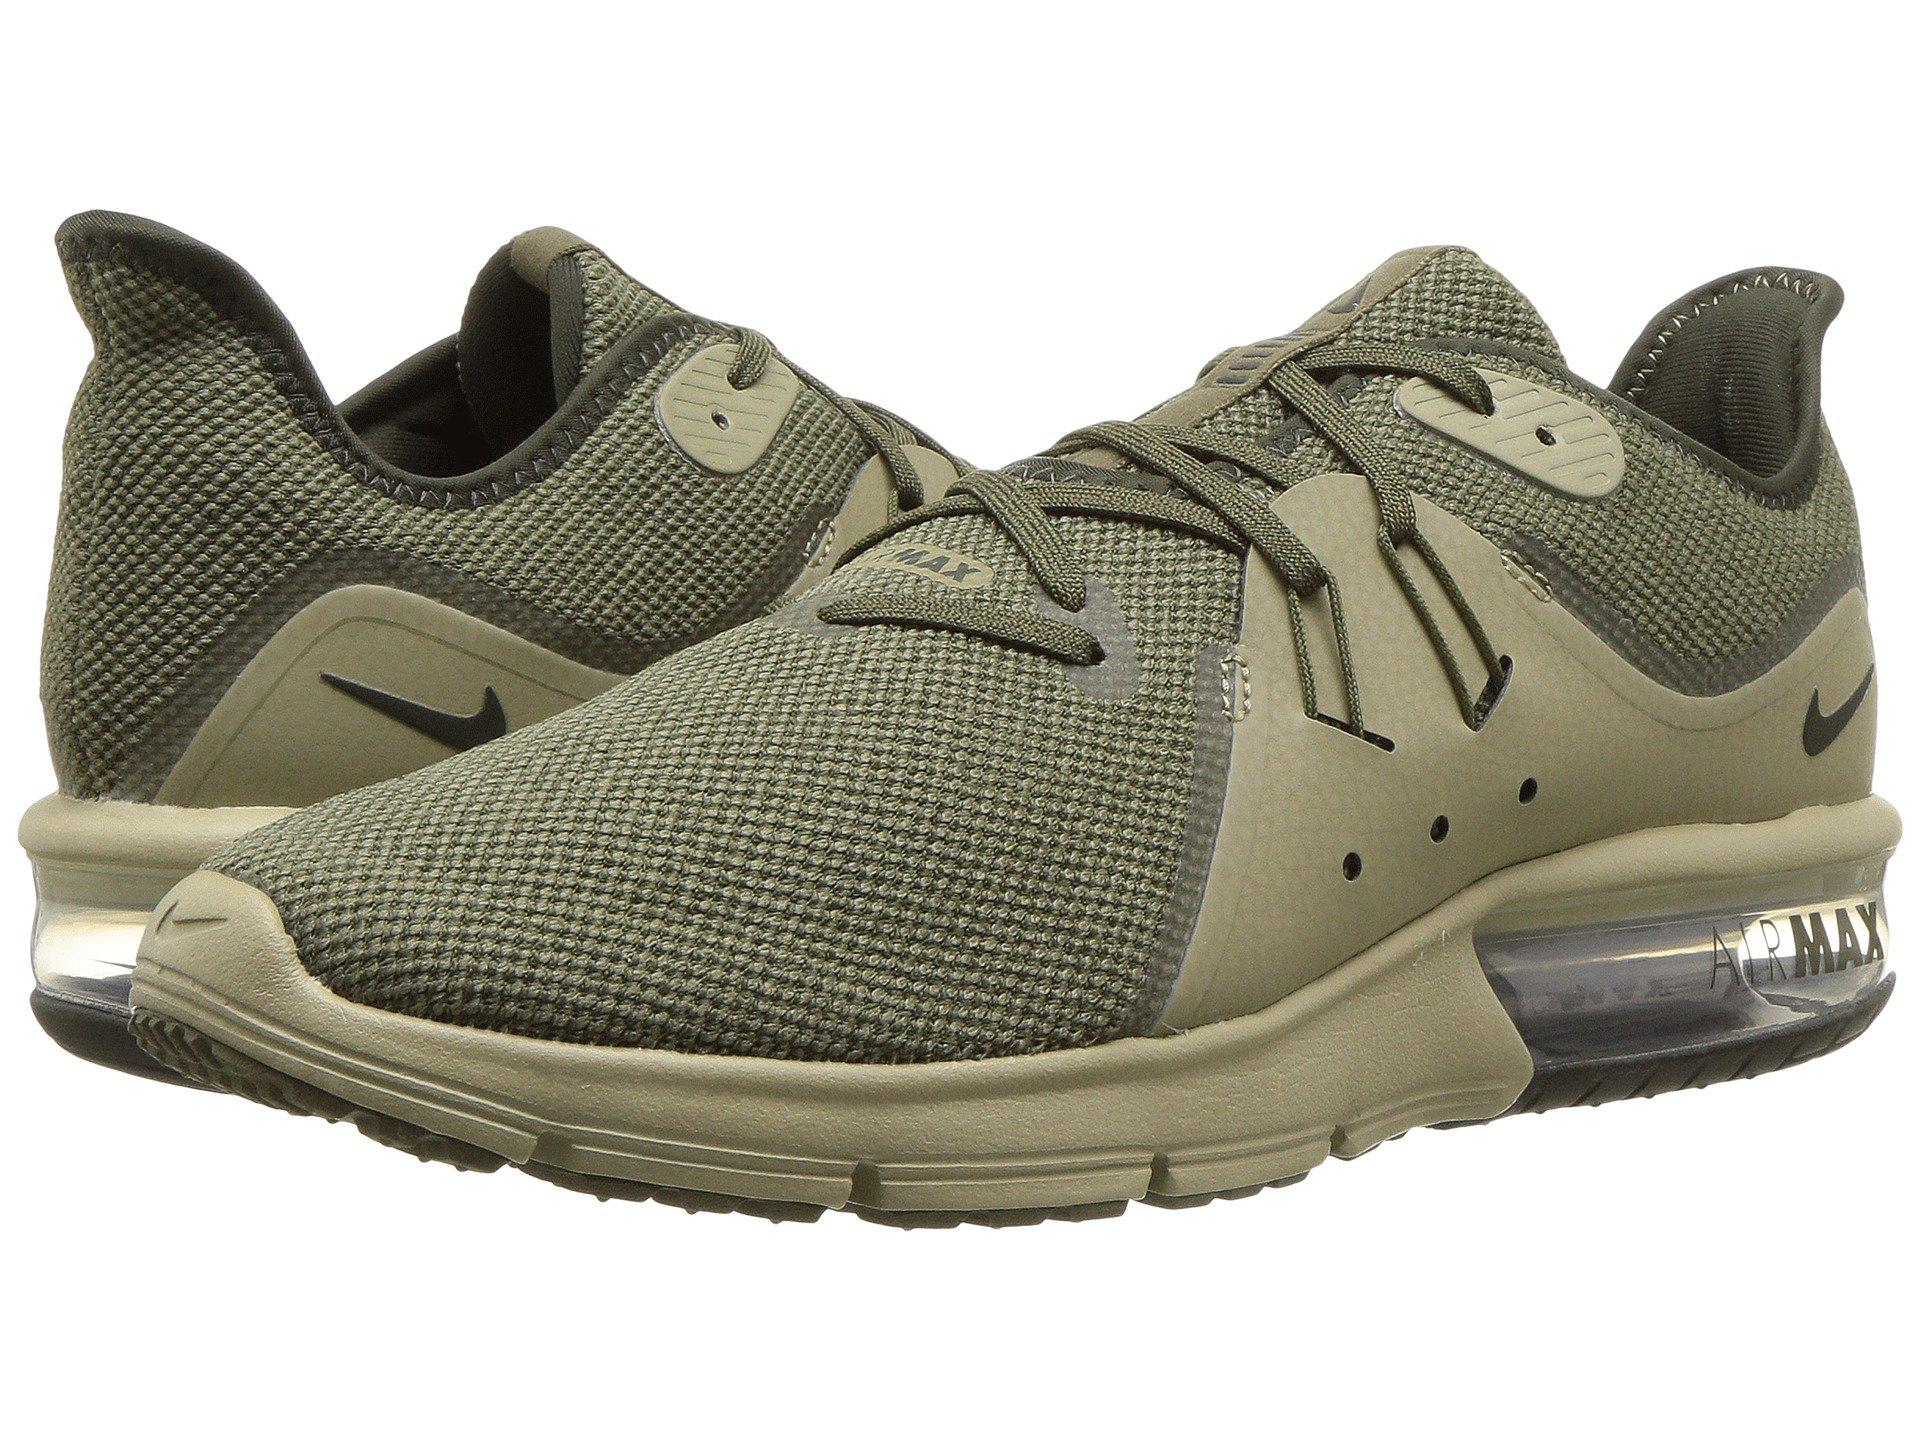 ac8066a8a40 Lyst - Nike Air Max Sequent 3 in Green for Men - Save 17%